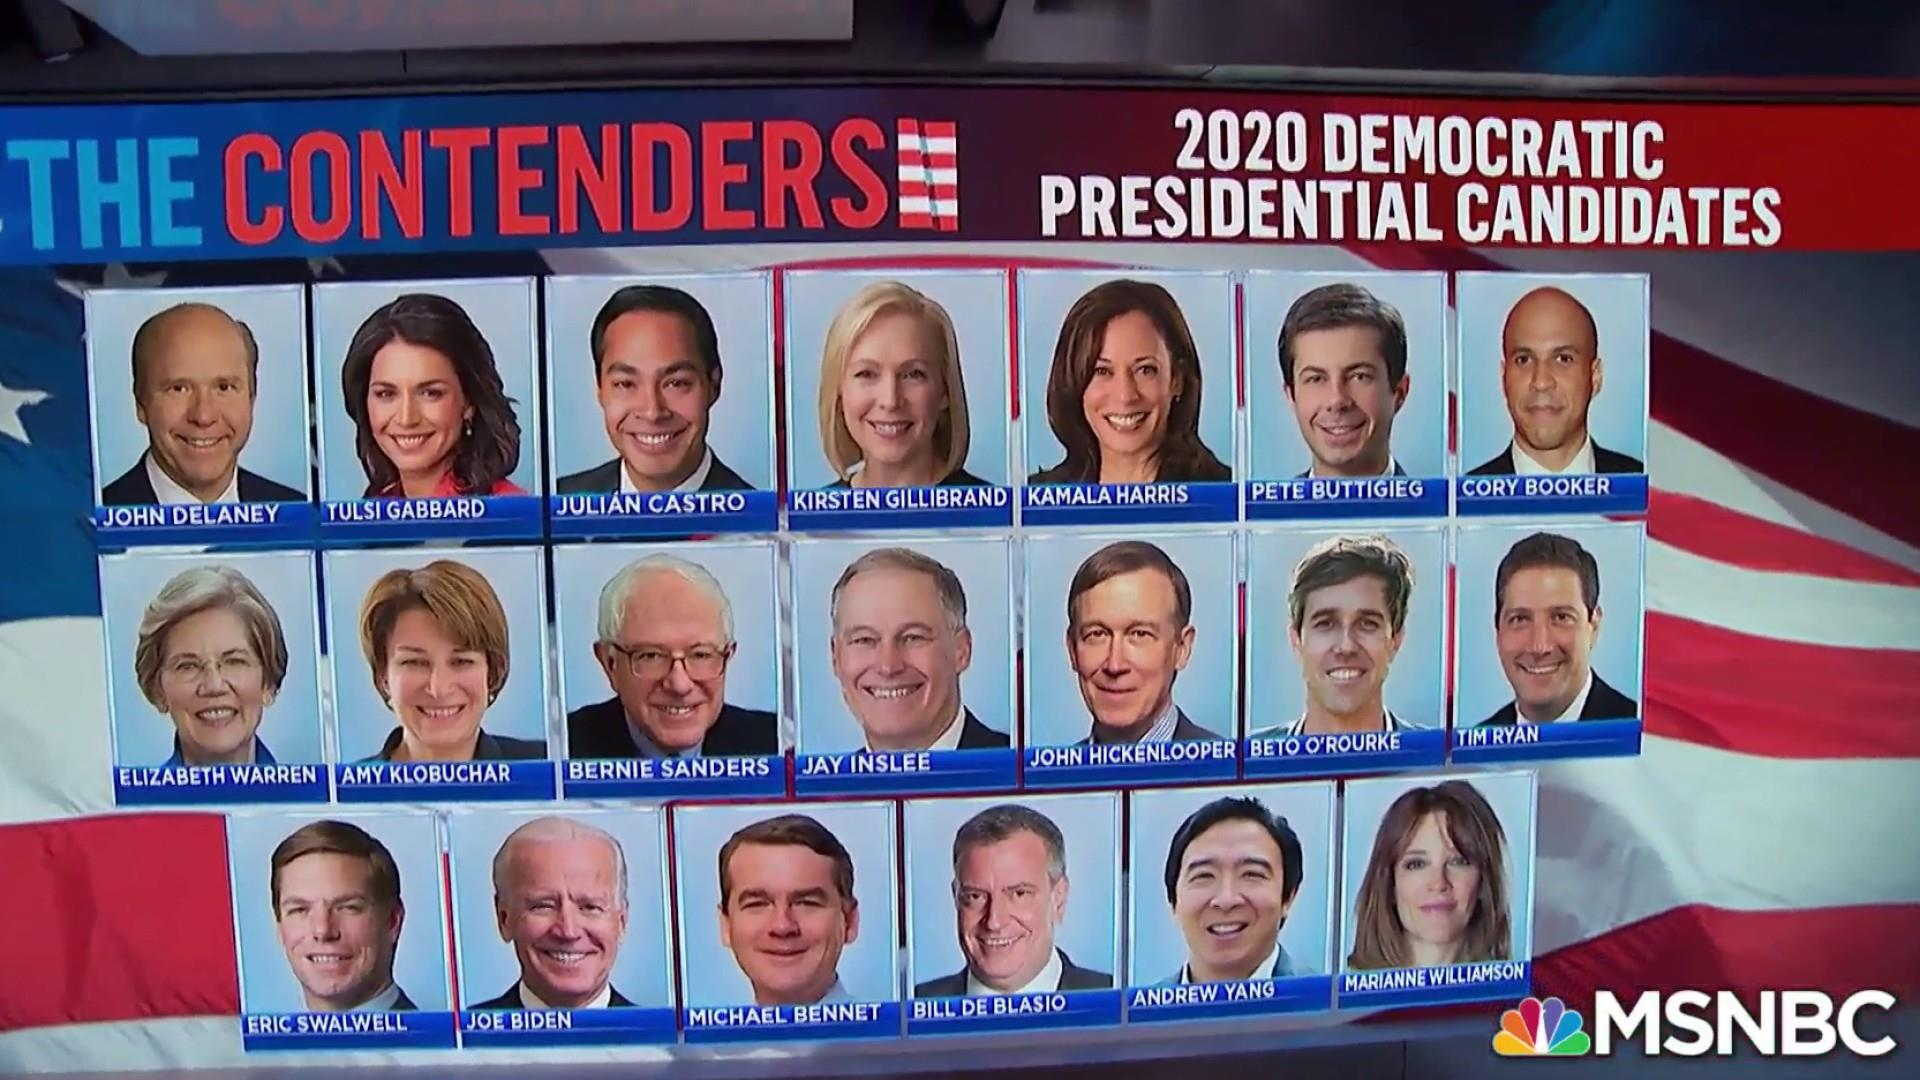 Big Question: What's the best strategy for 2020 Democrats looking to stand out on the stage?